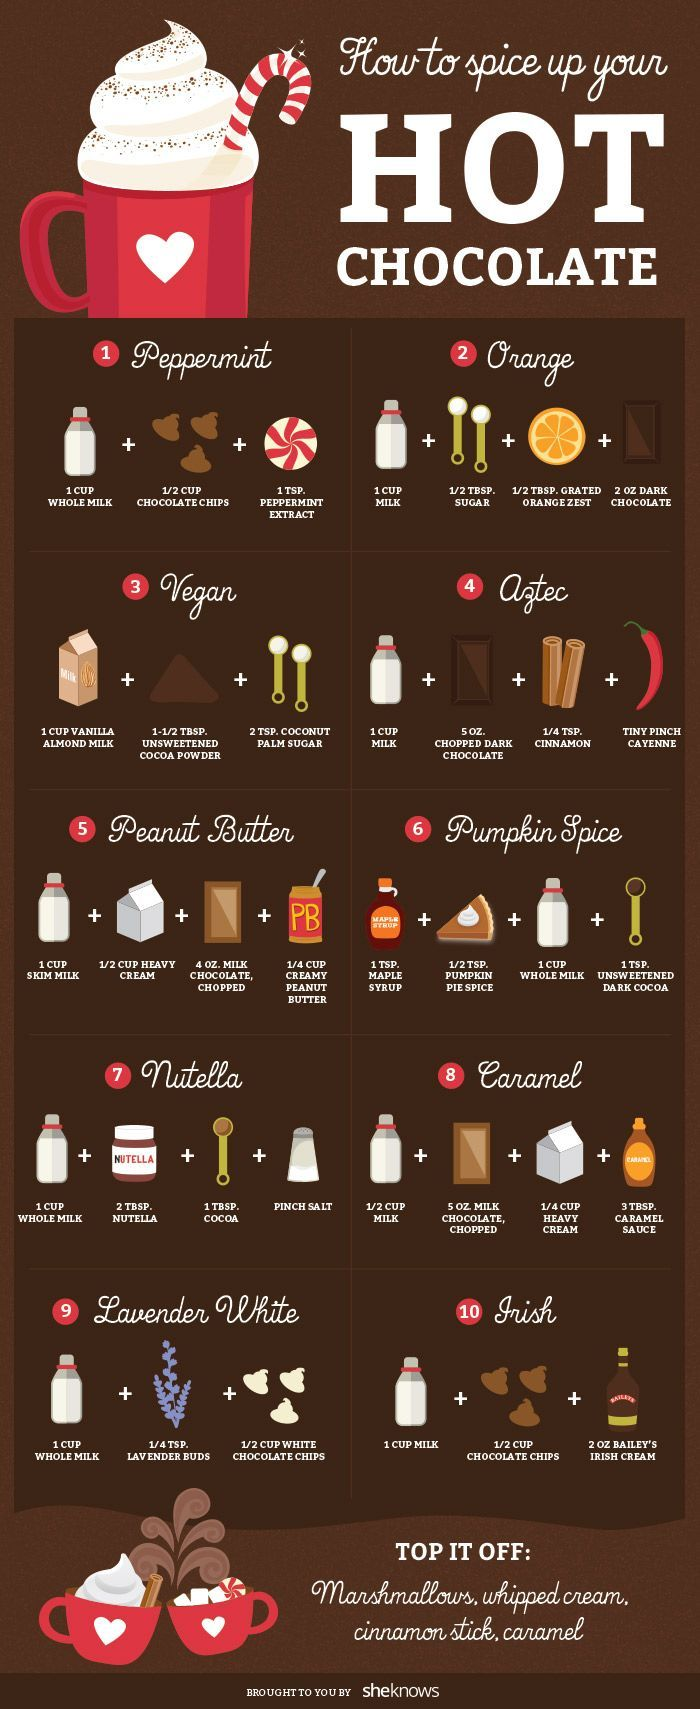 How to spice up your Hot Chocolate #infographic #toptip